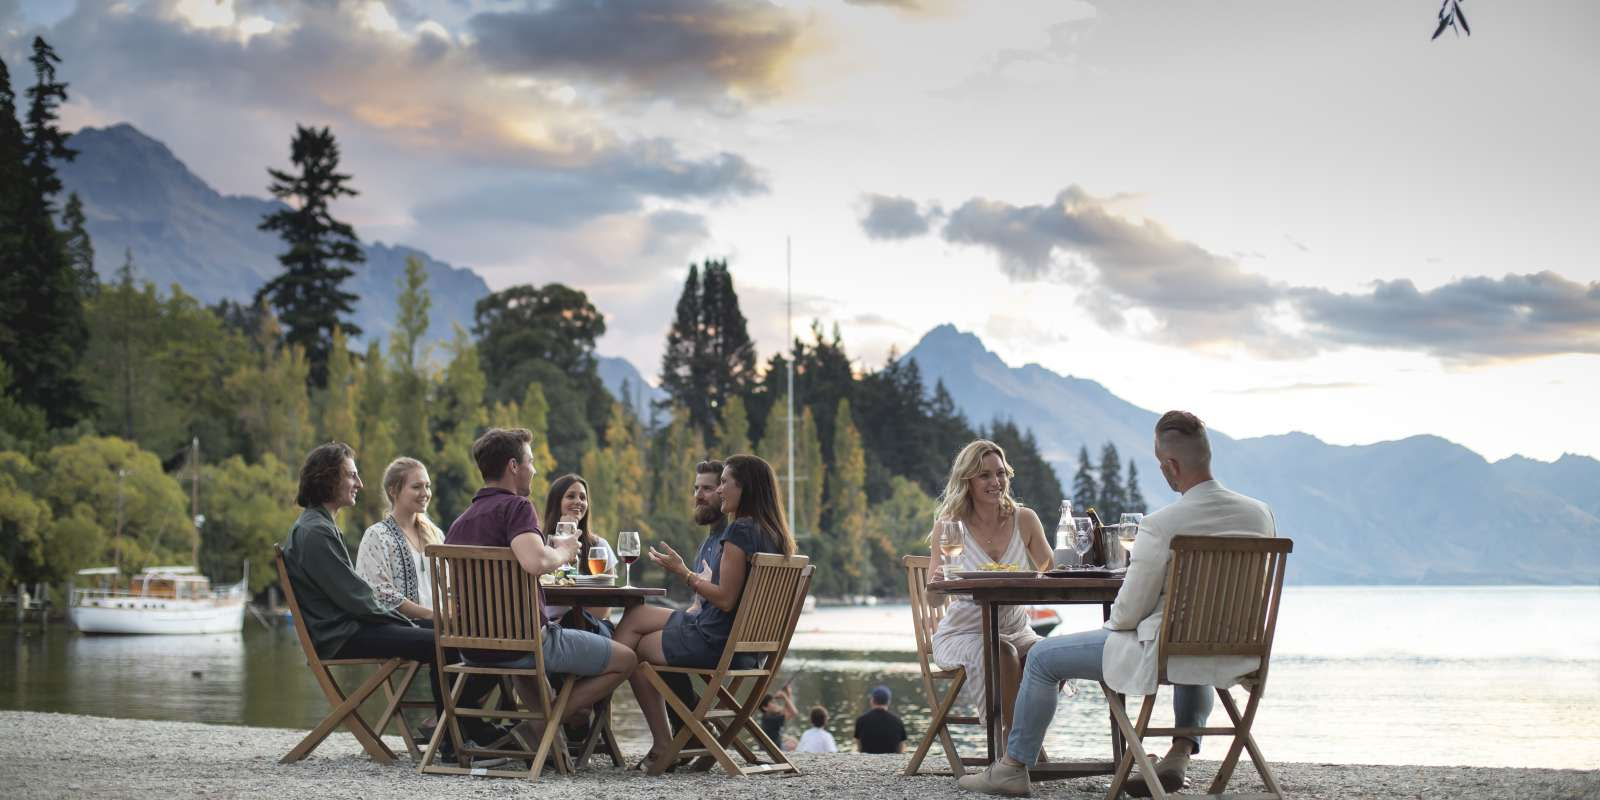 Al Fresco Dining on Queenstown Beach. The Bathhouse Cafe Bar and Restaurant.